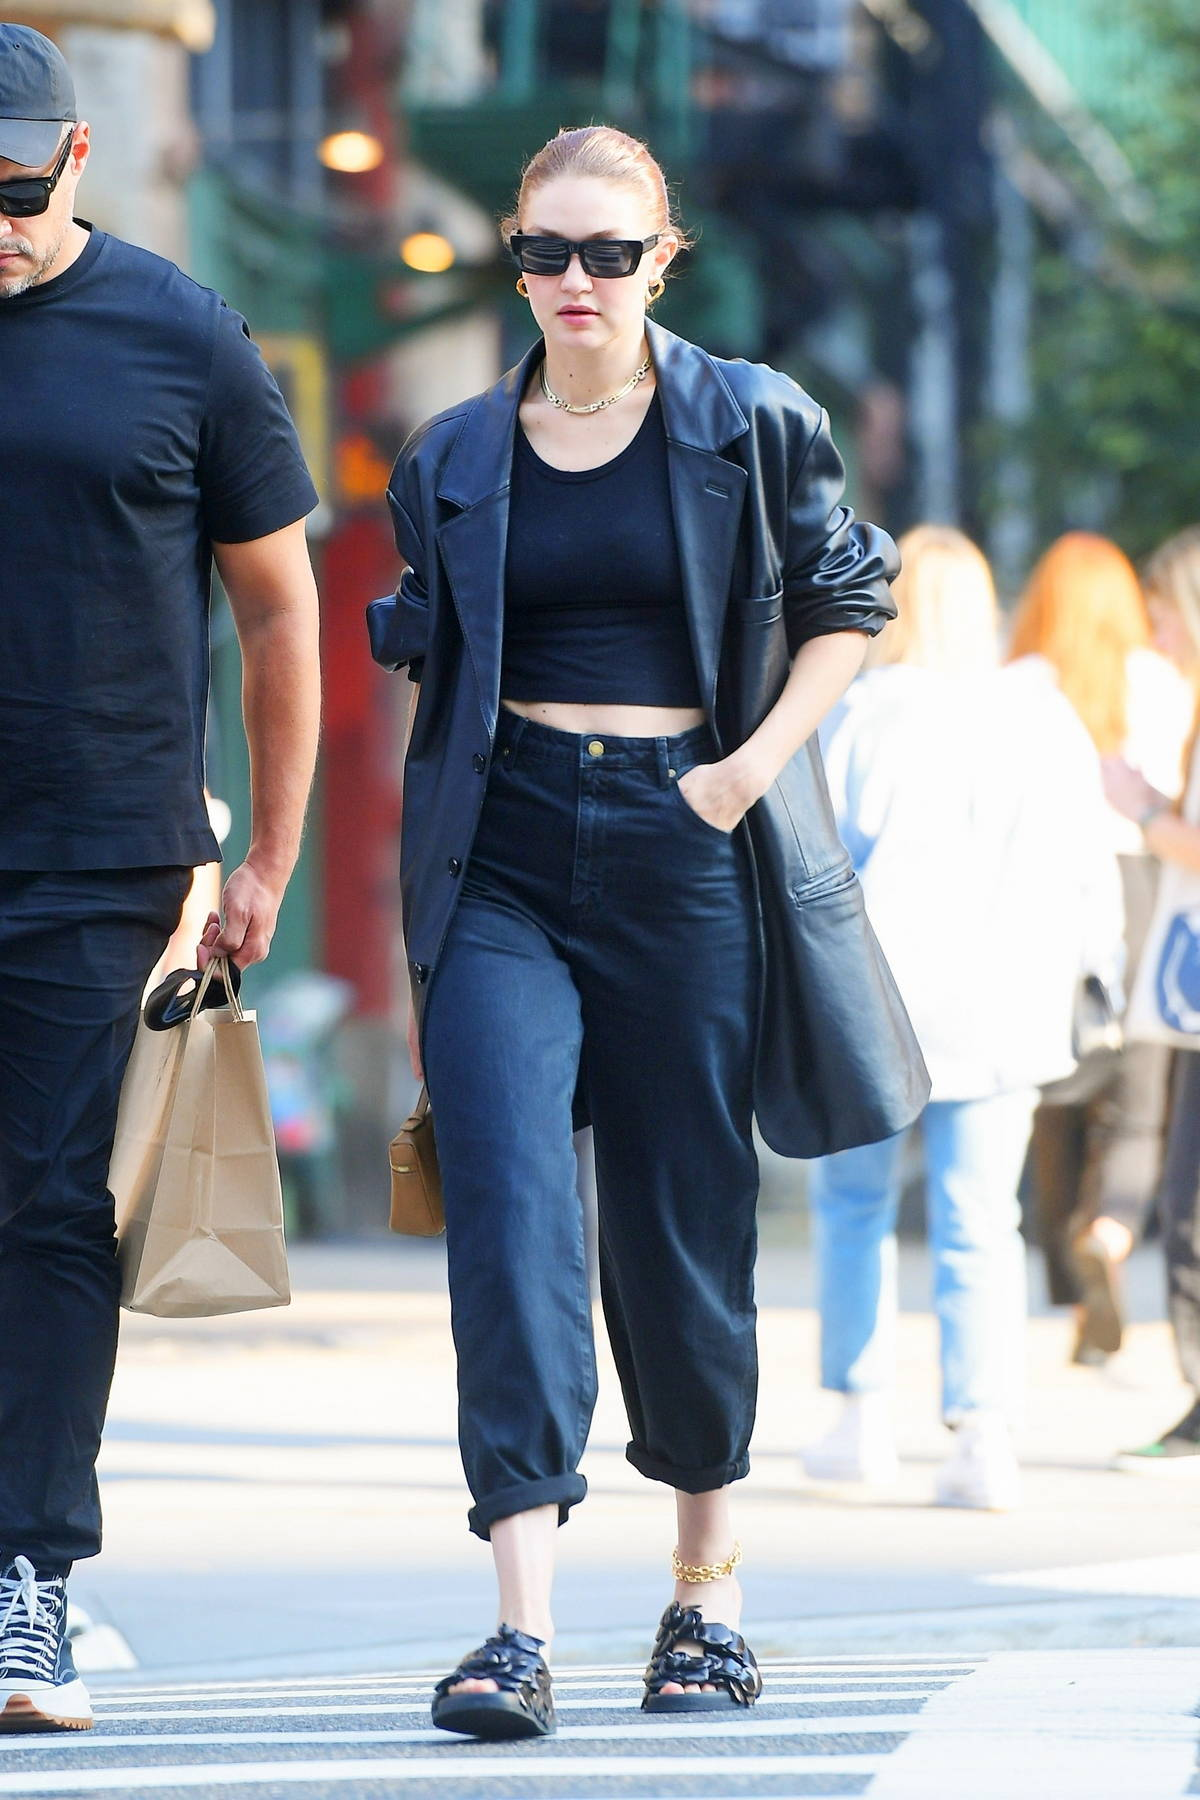 Gigi Hadid steps out looking stylish in a black leather jacket paired with a matching top and denim in New York City